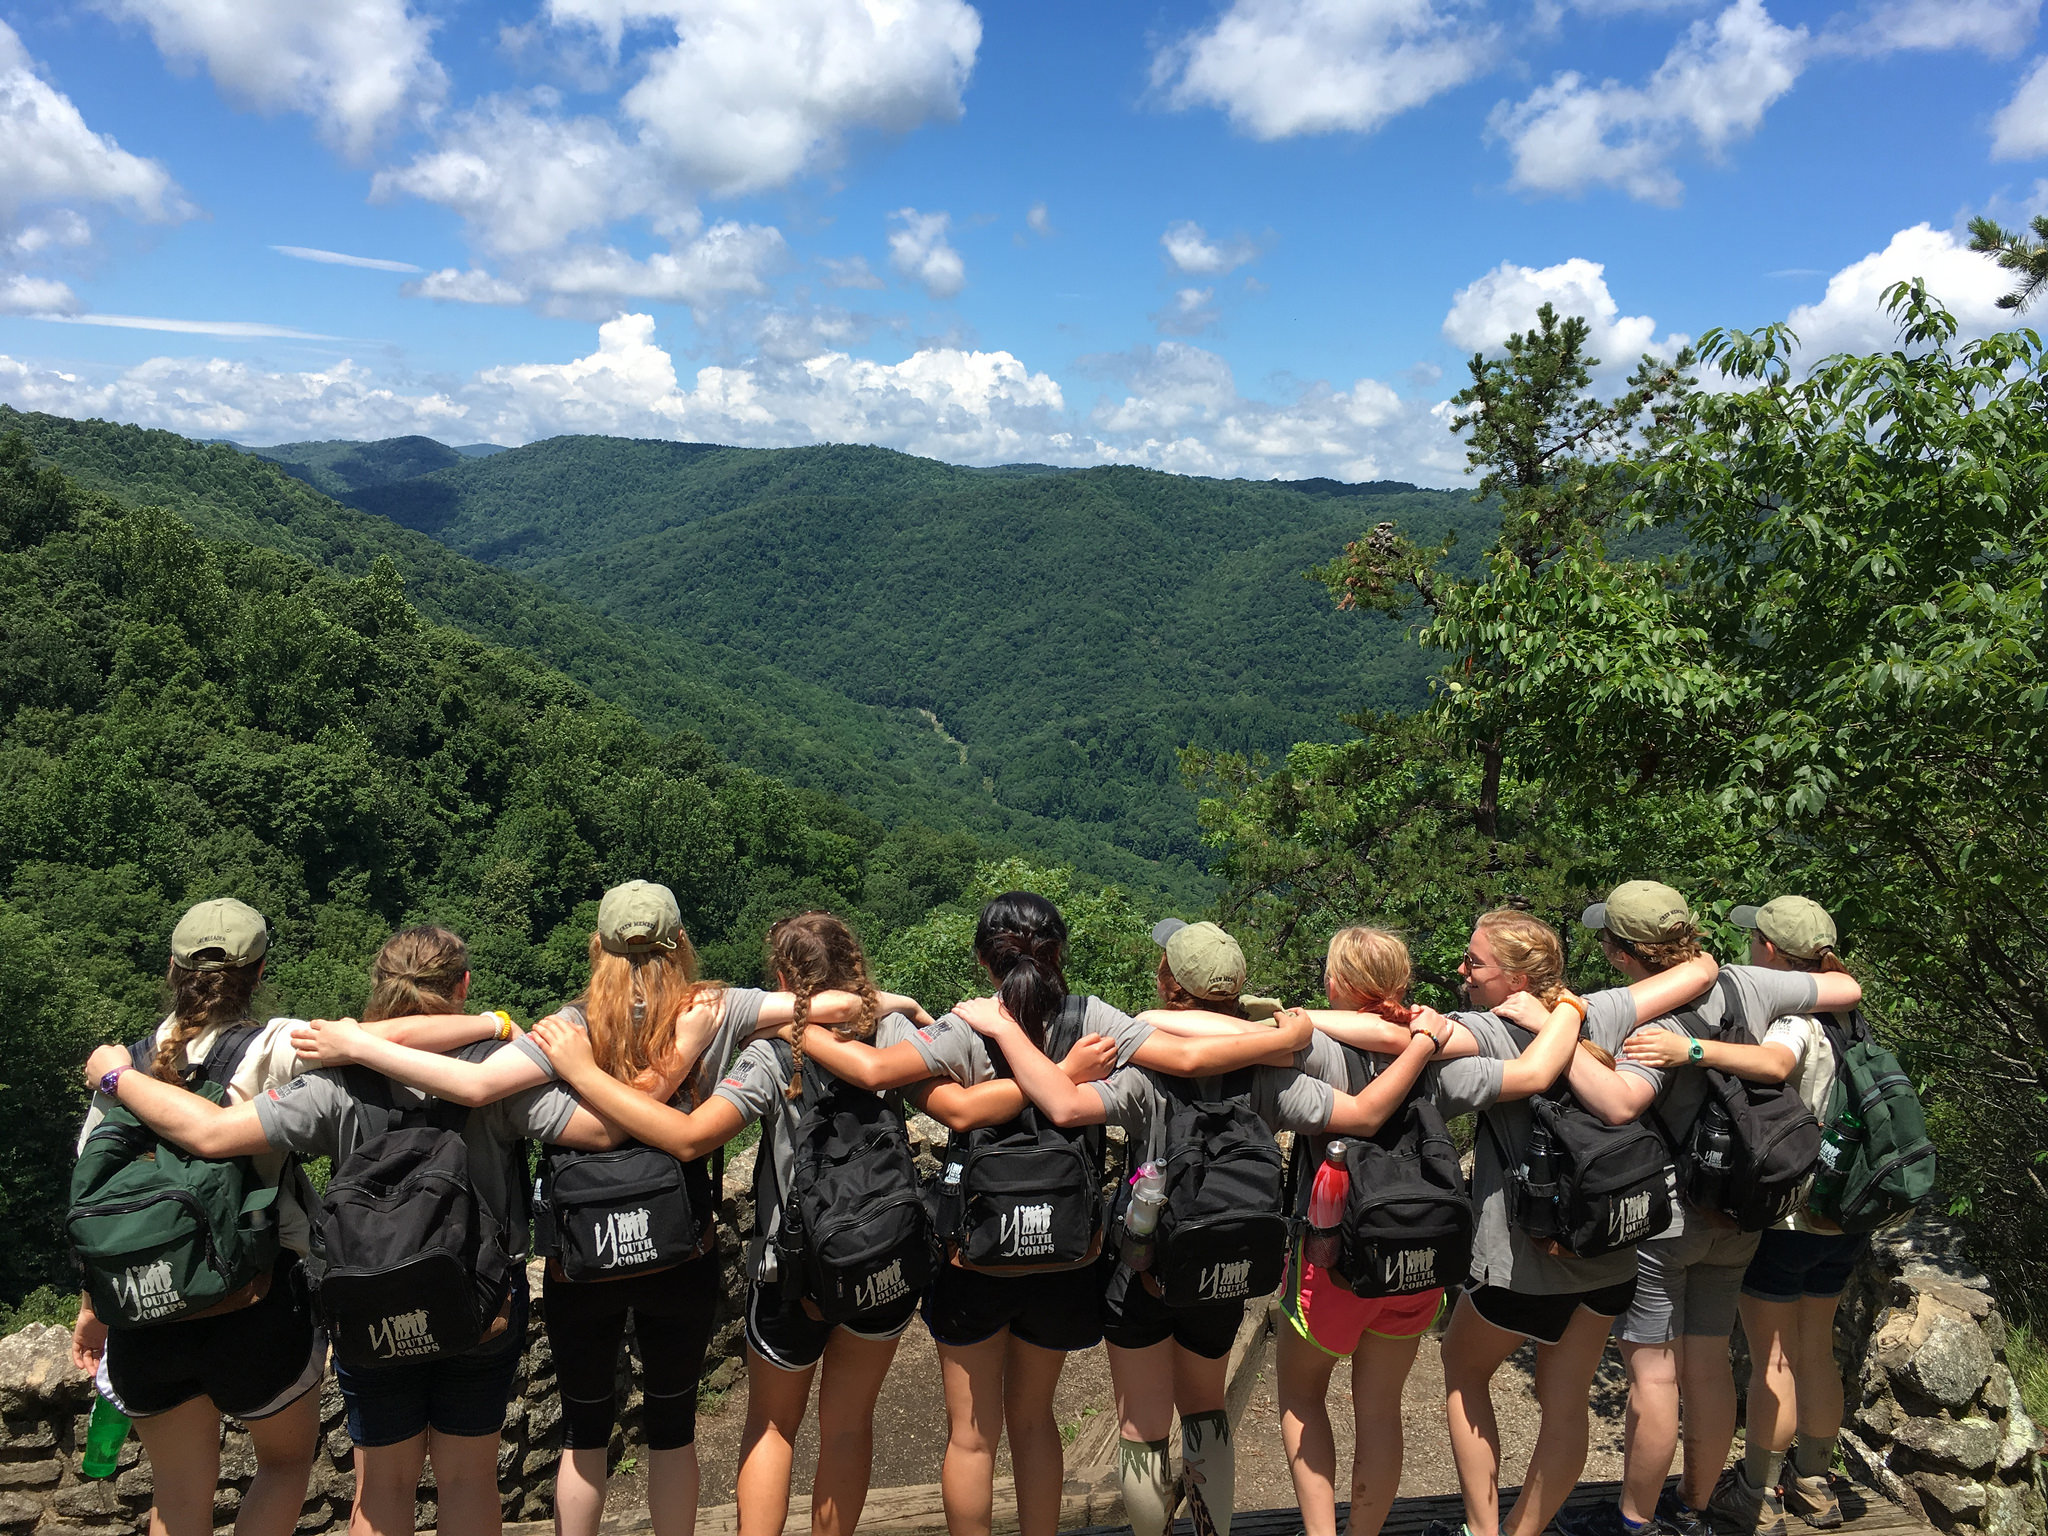 The crew from James River State Park celebrate their camaraderie while enjoying the view on a trip to Crabtree Falls